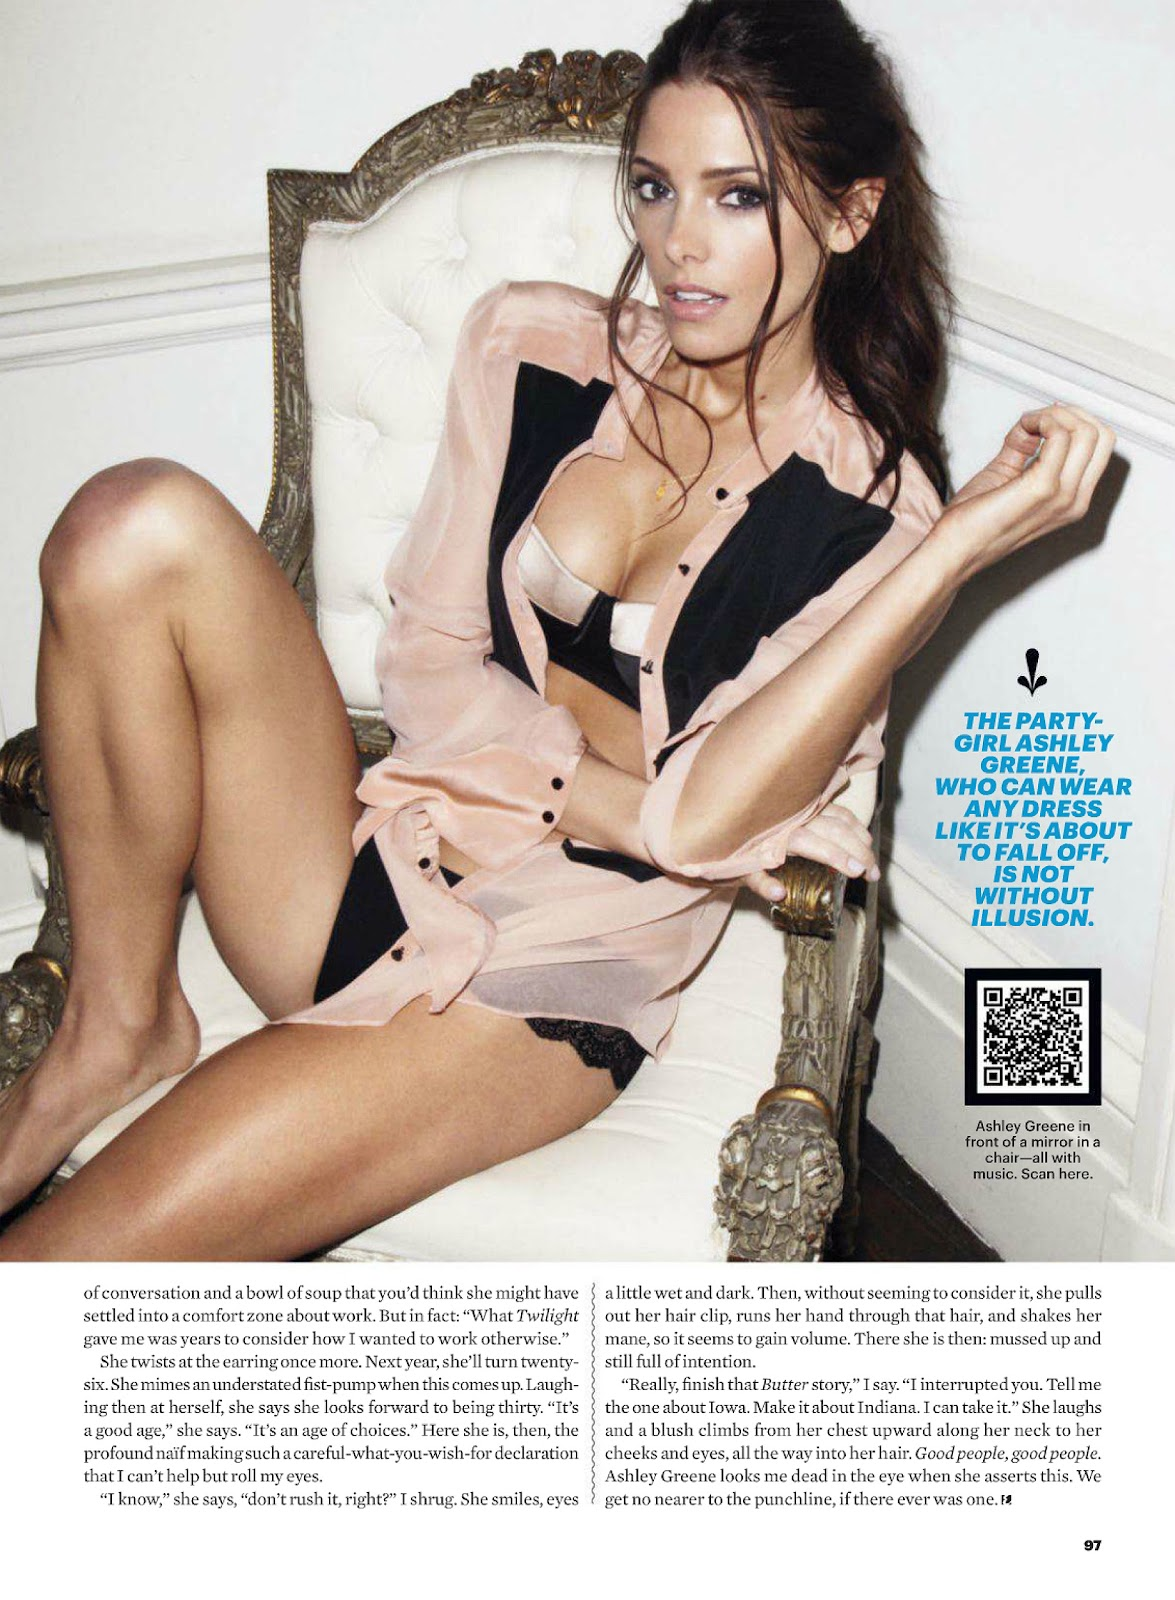 http://3.bp.blogspot.com/-qWRXKyYqUss/UGYL_plhzfI/AAAAAAAAPVA/xeHznxYhTMw/s1600/Ashley+Greene+wearing+lingerie+in+Esquire+USA+August+2012+issue+-+01.jpg